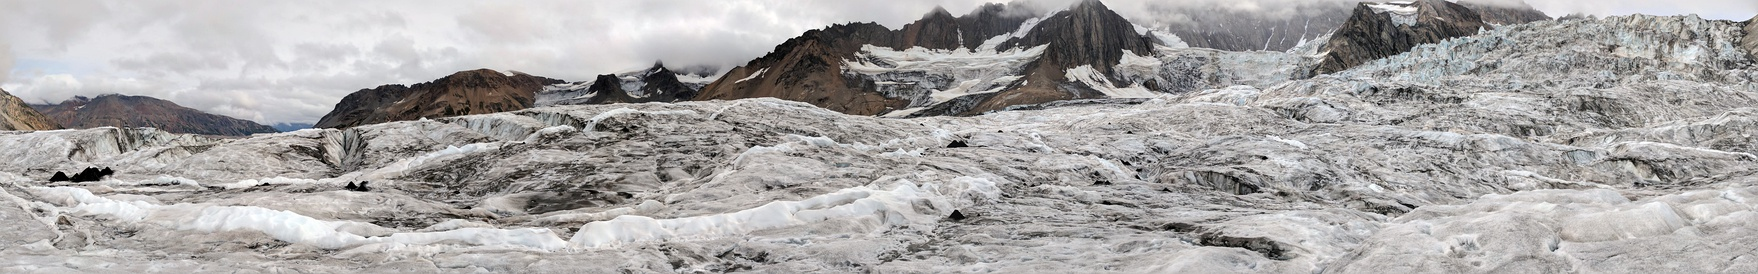 Panorama of Trimble Glacier